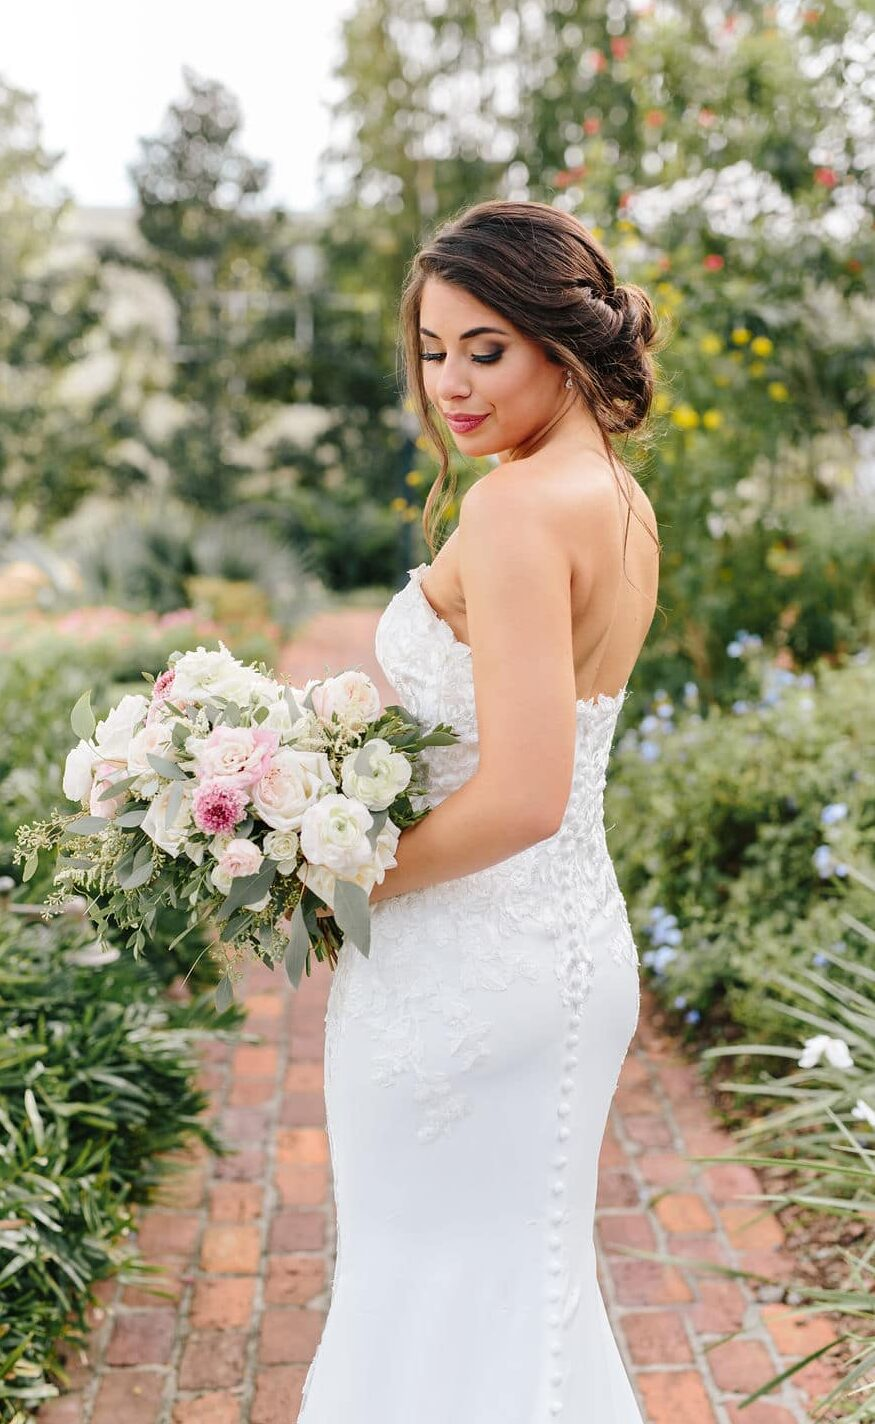 M3 Beauty, bride on brick path looking over shoulder to camera